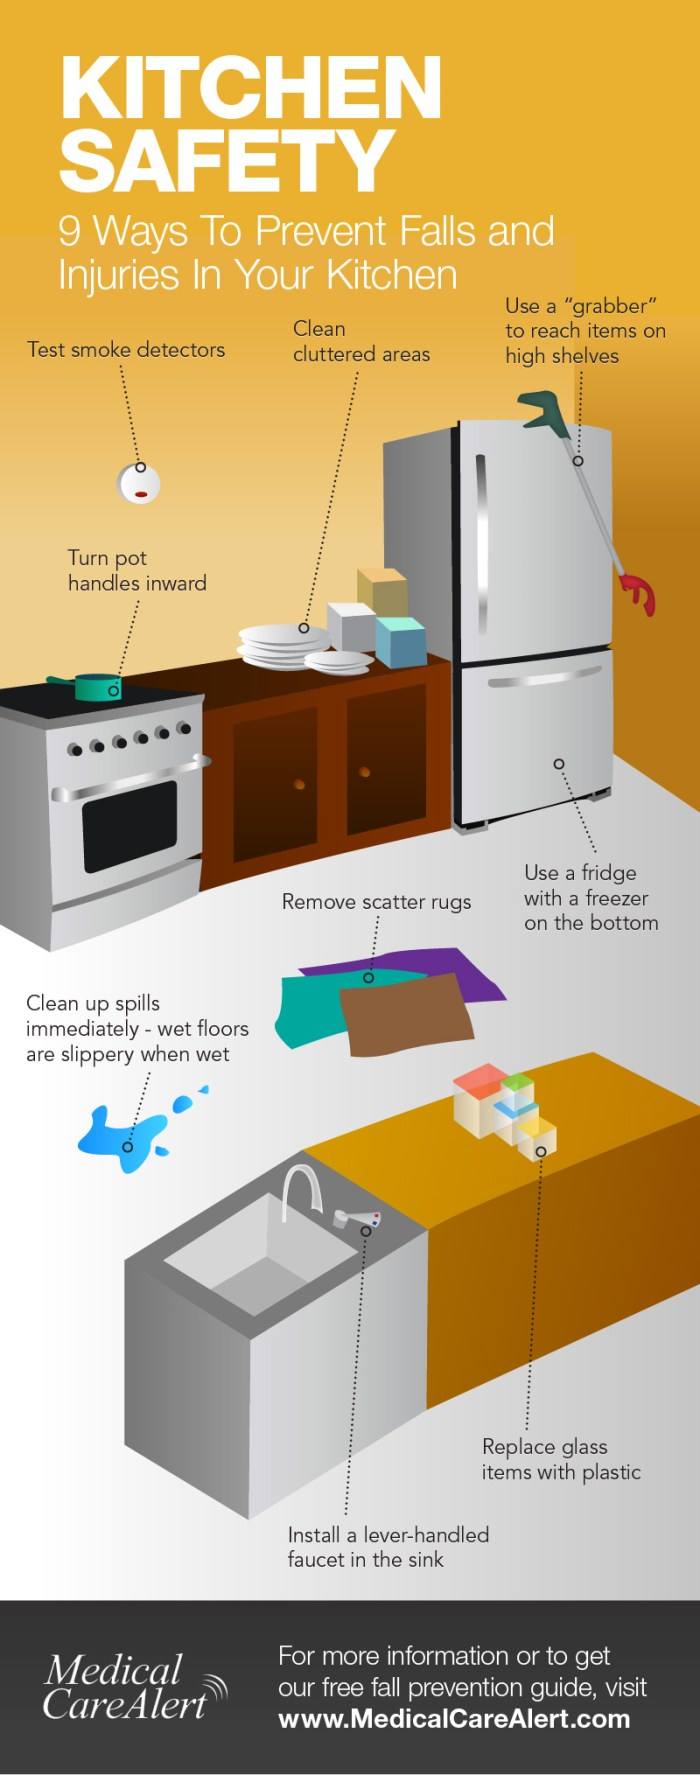 kitchen safety for seniors infographic